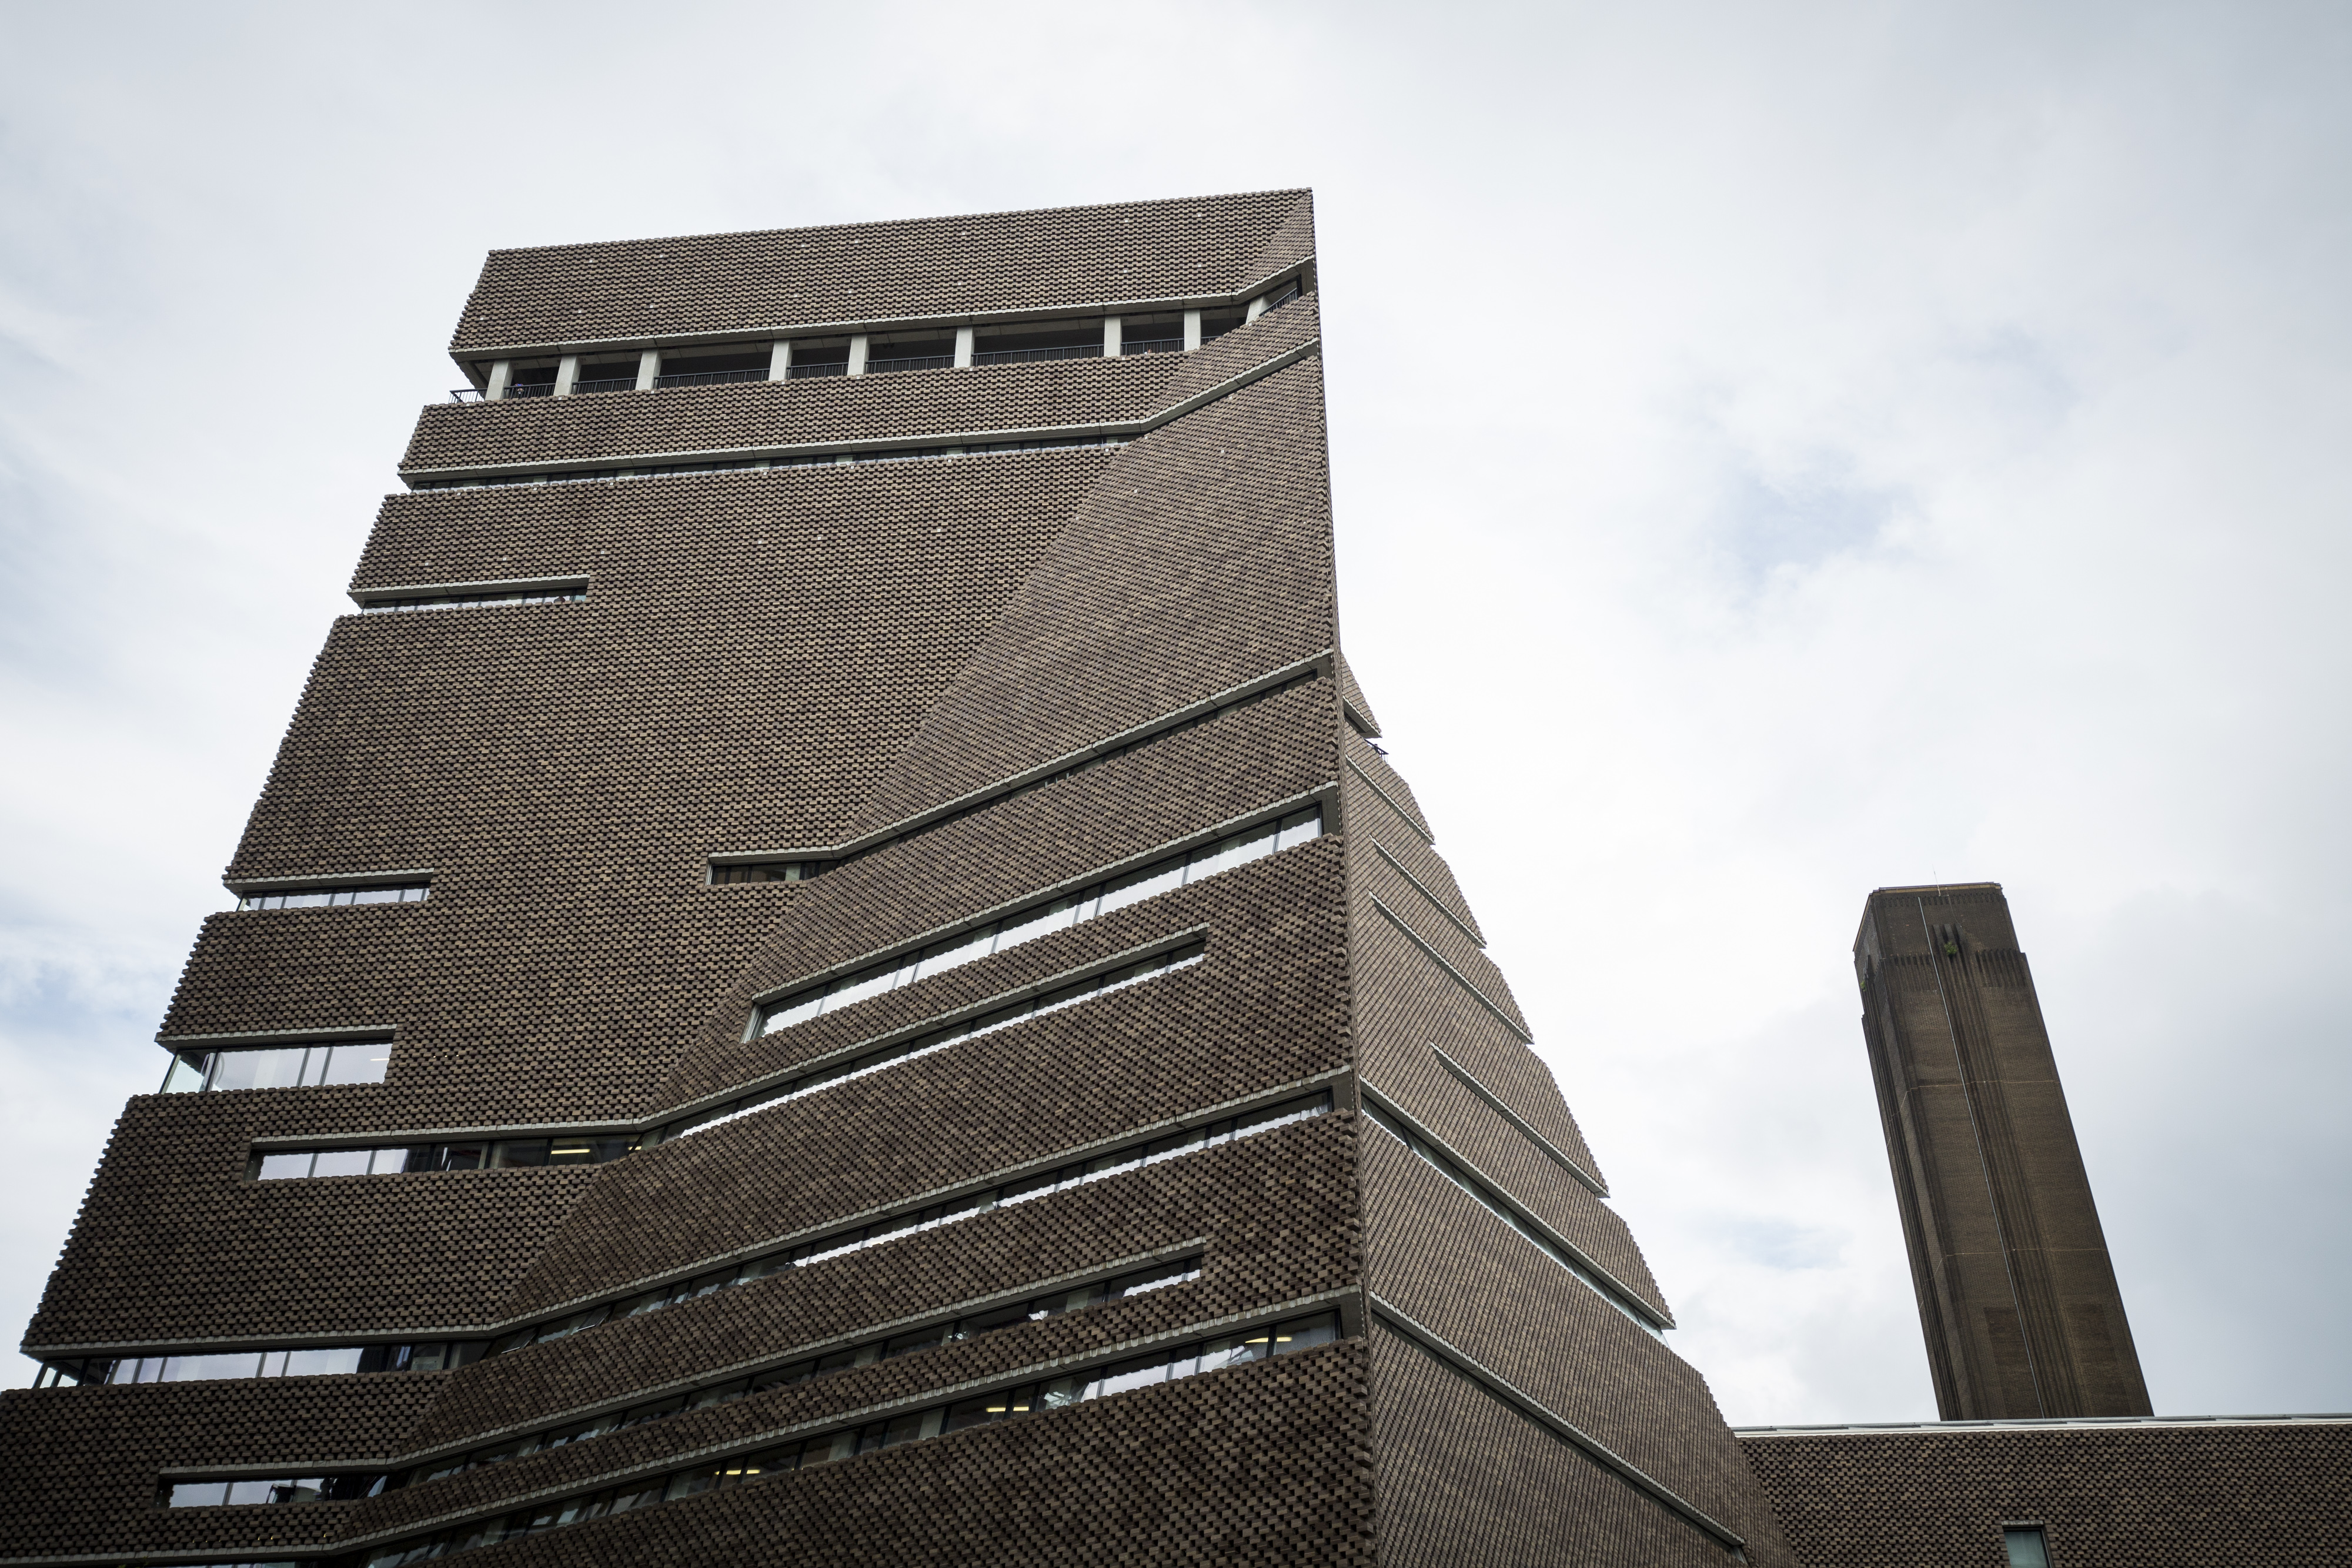 The Tate Modern's new Switch House building by architects Herzog & de Meuron on June 14, 2016 in London.